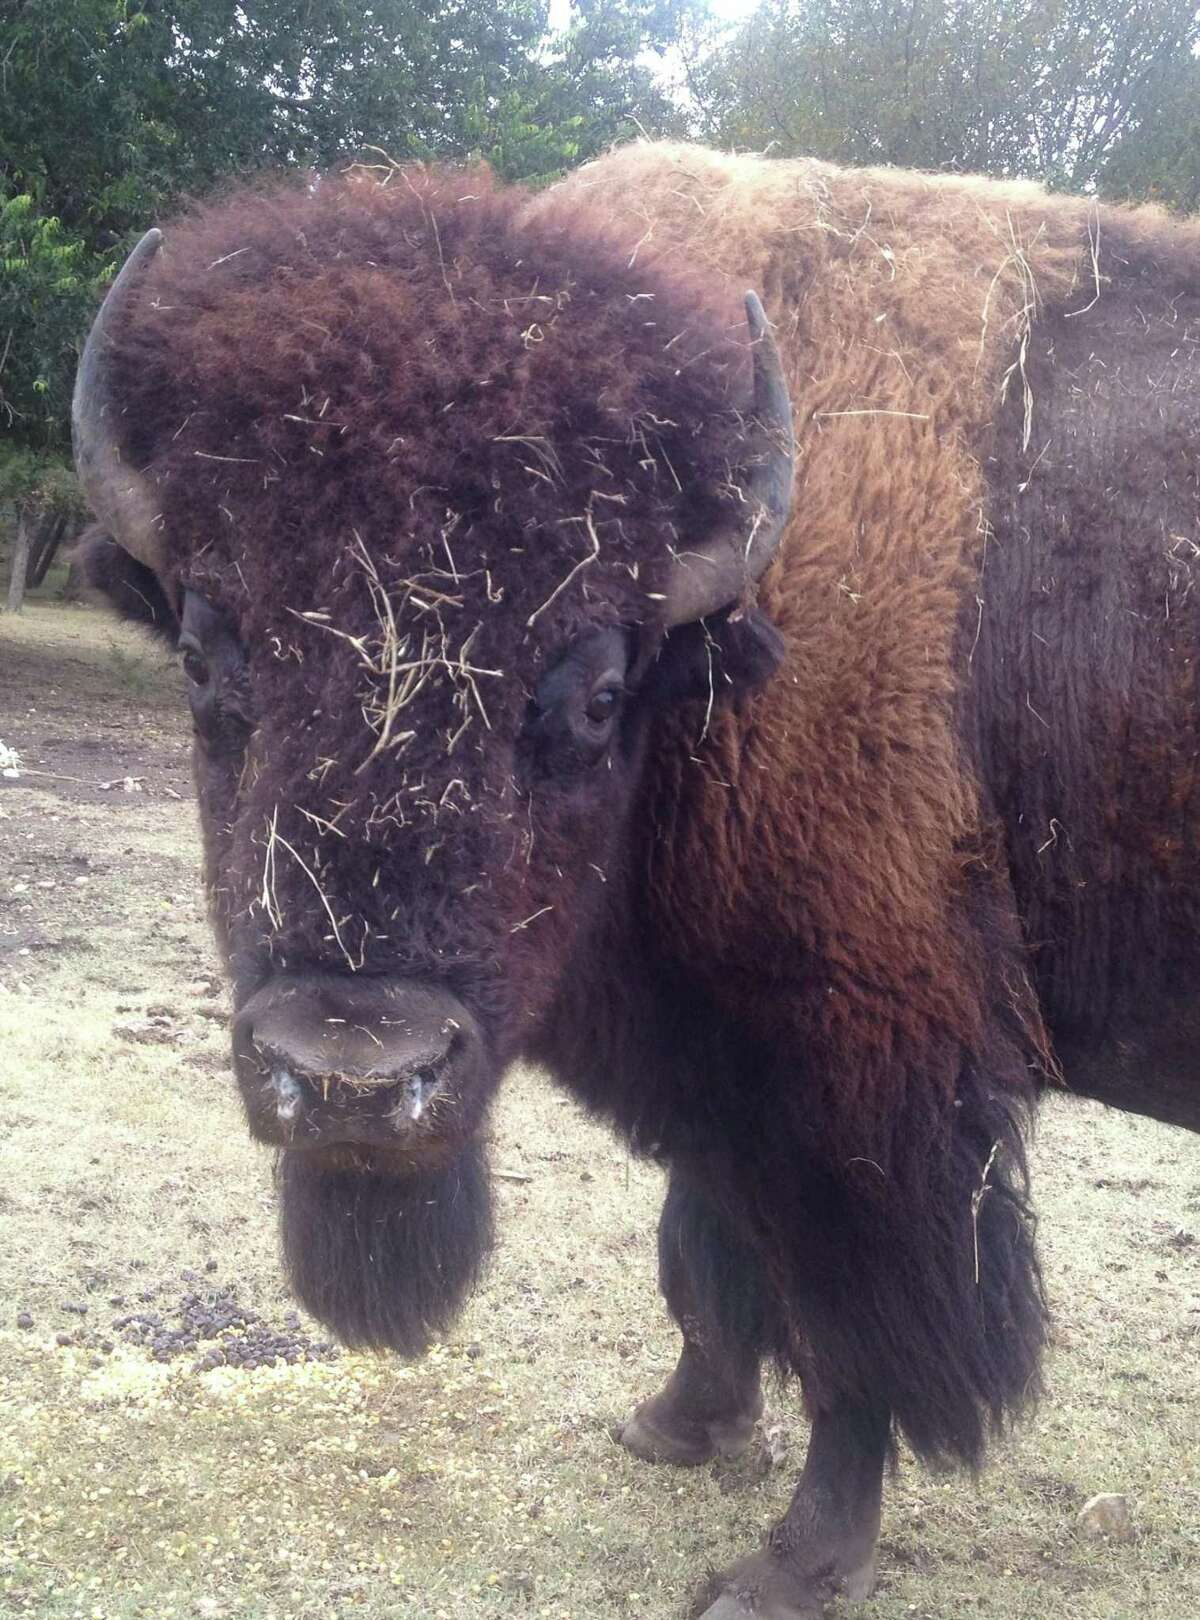 Buster, a bison on the Fox Creek Ranch, likes to play with new bales of hay when they're set out for feed, says owner Charles Wilson. It looks like the bull just finished one off.